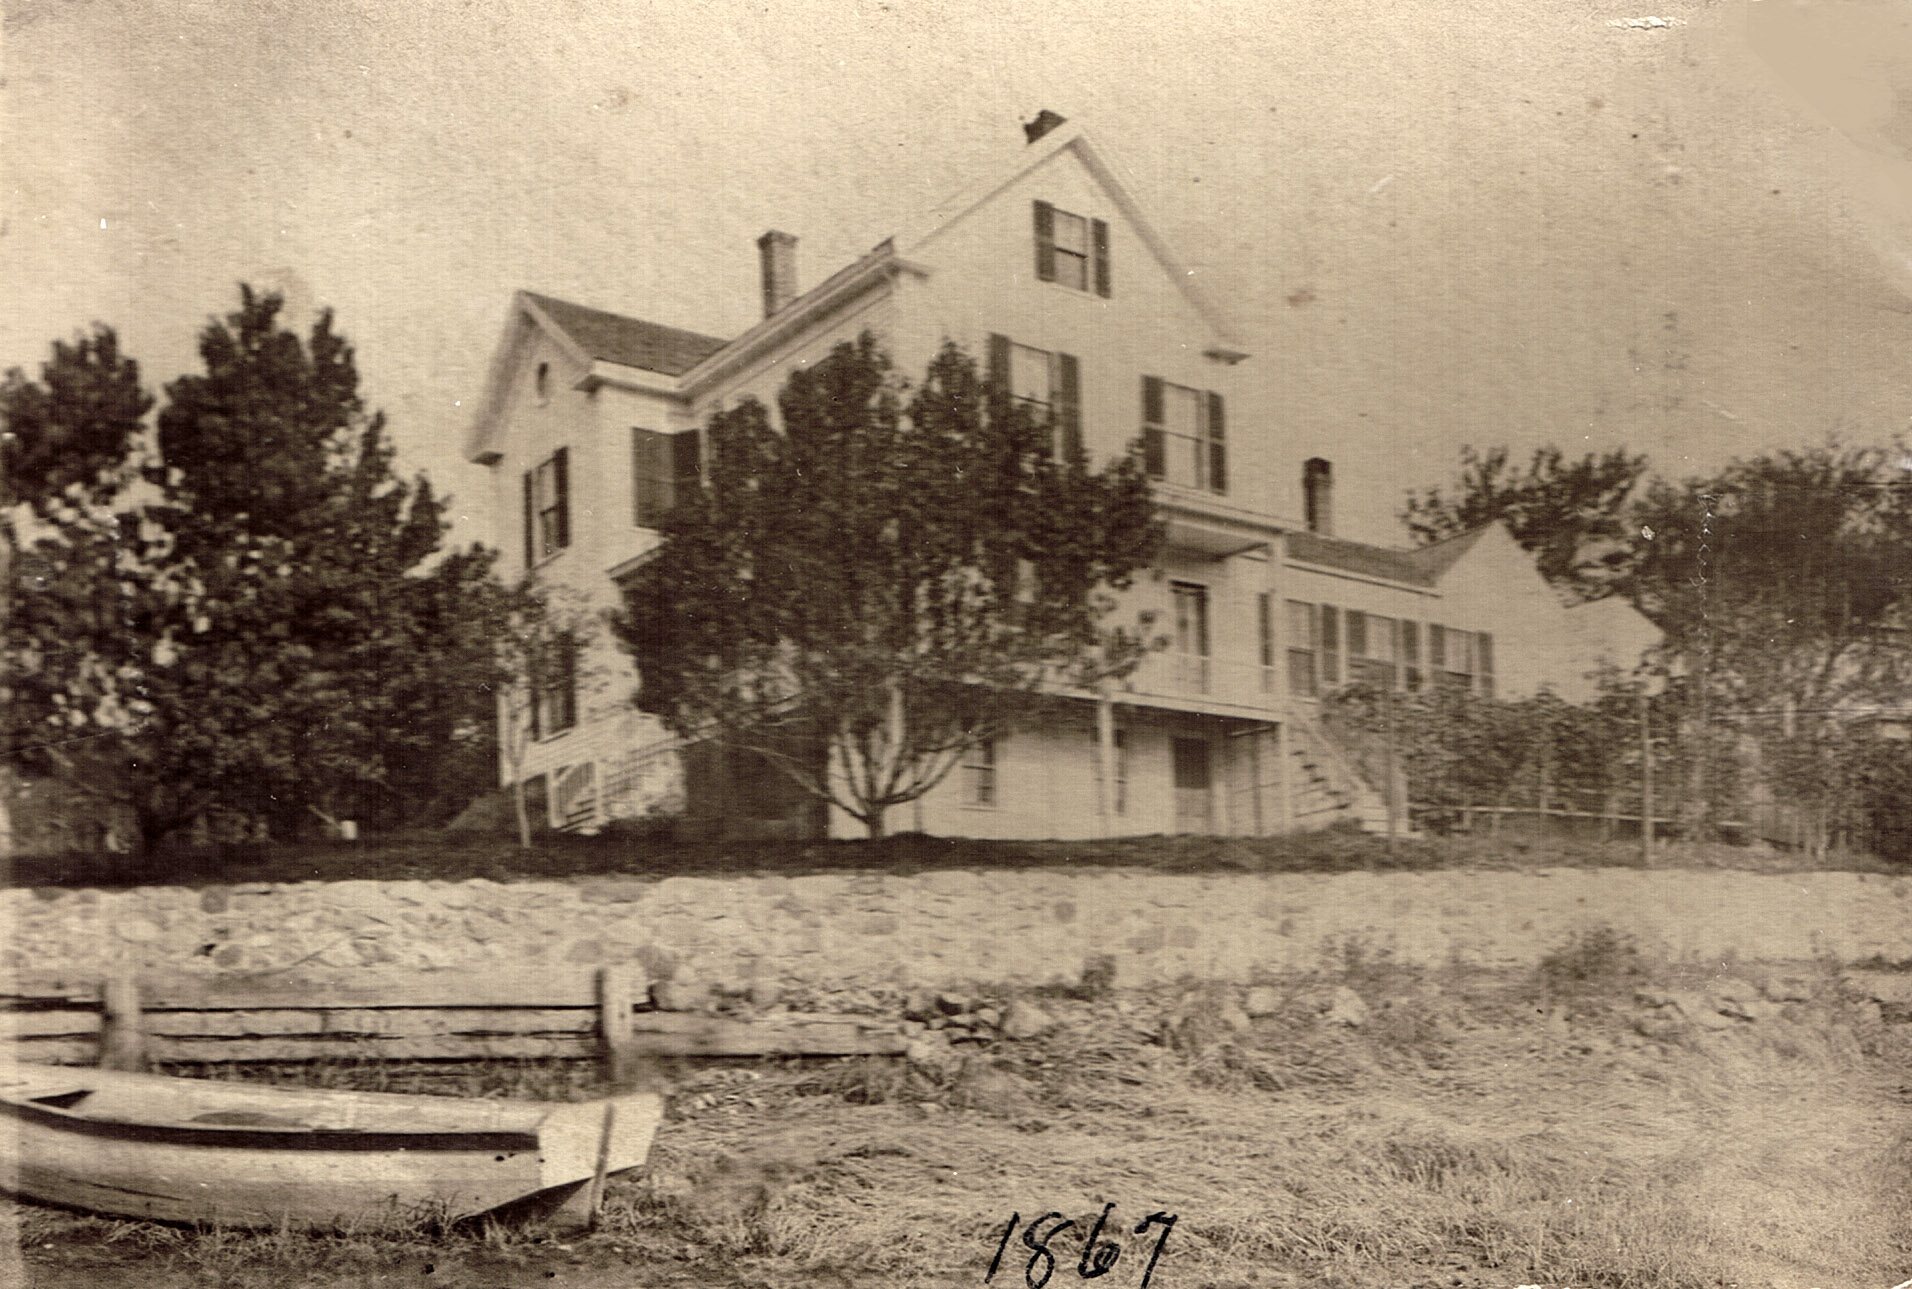 The Ellsworth house, 6 Hovey St., Ipswich